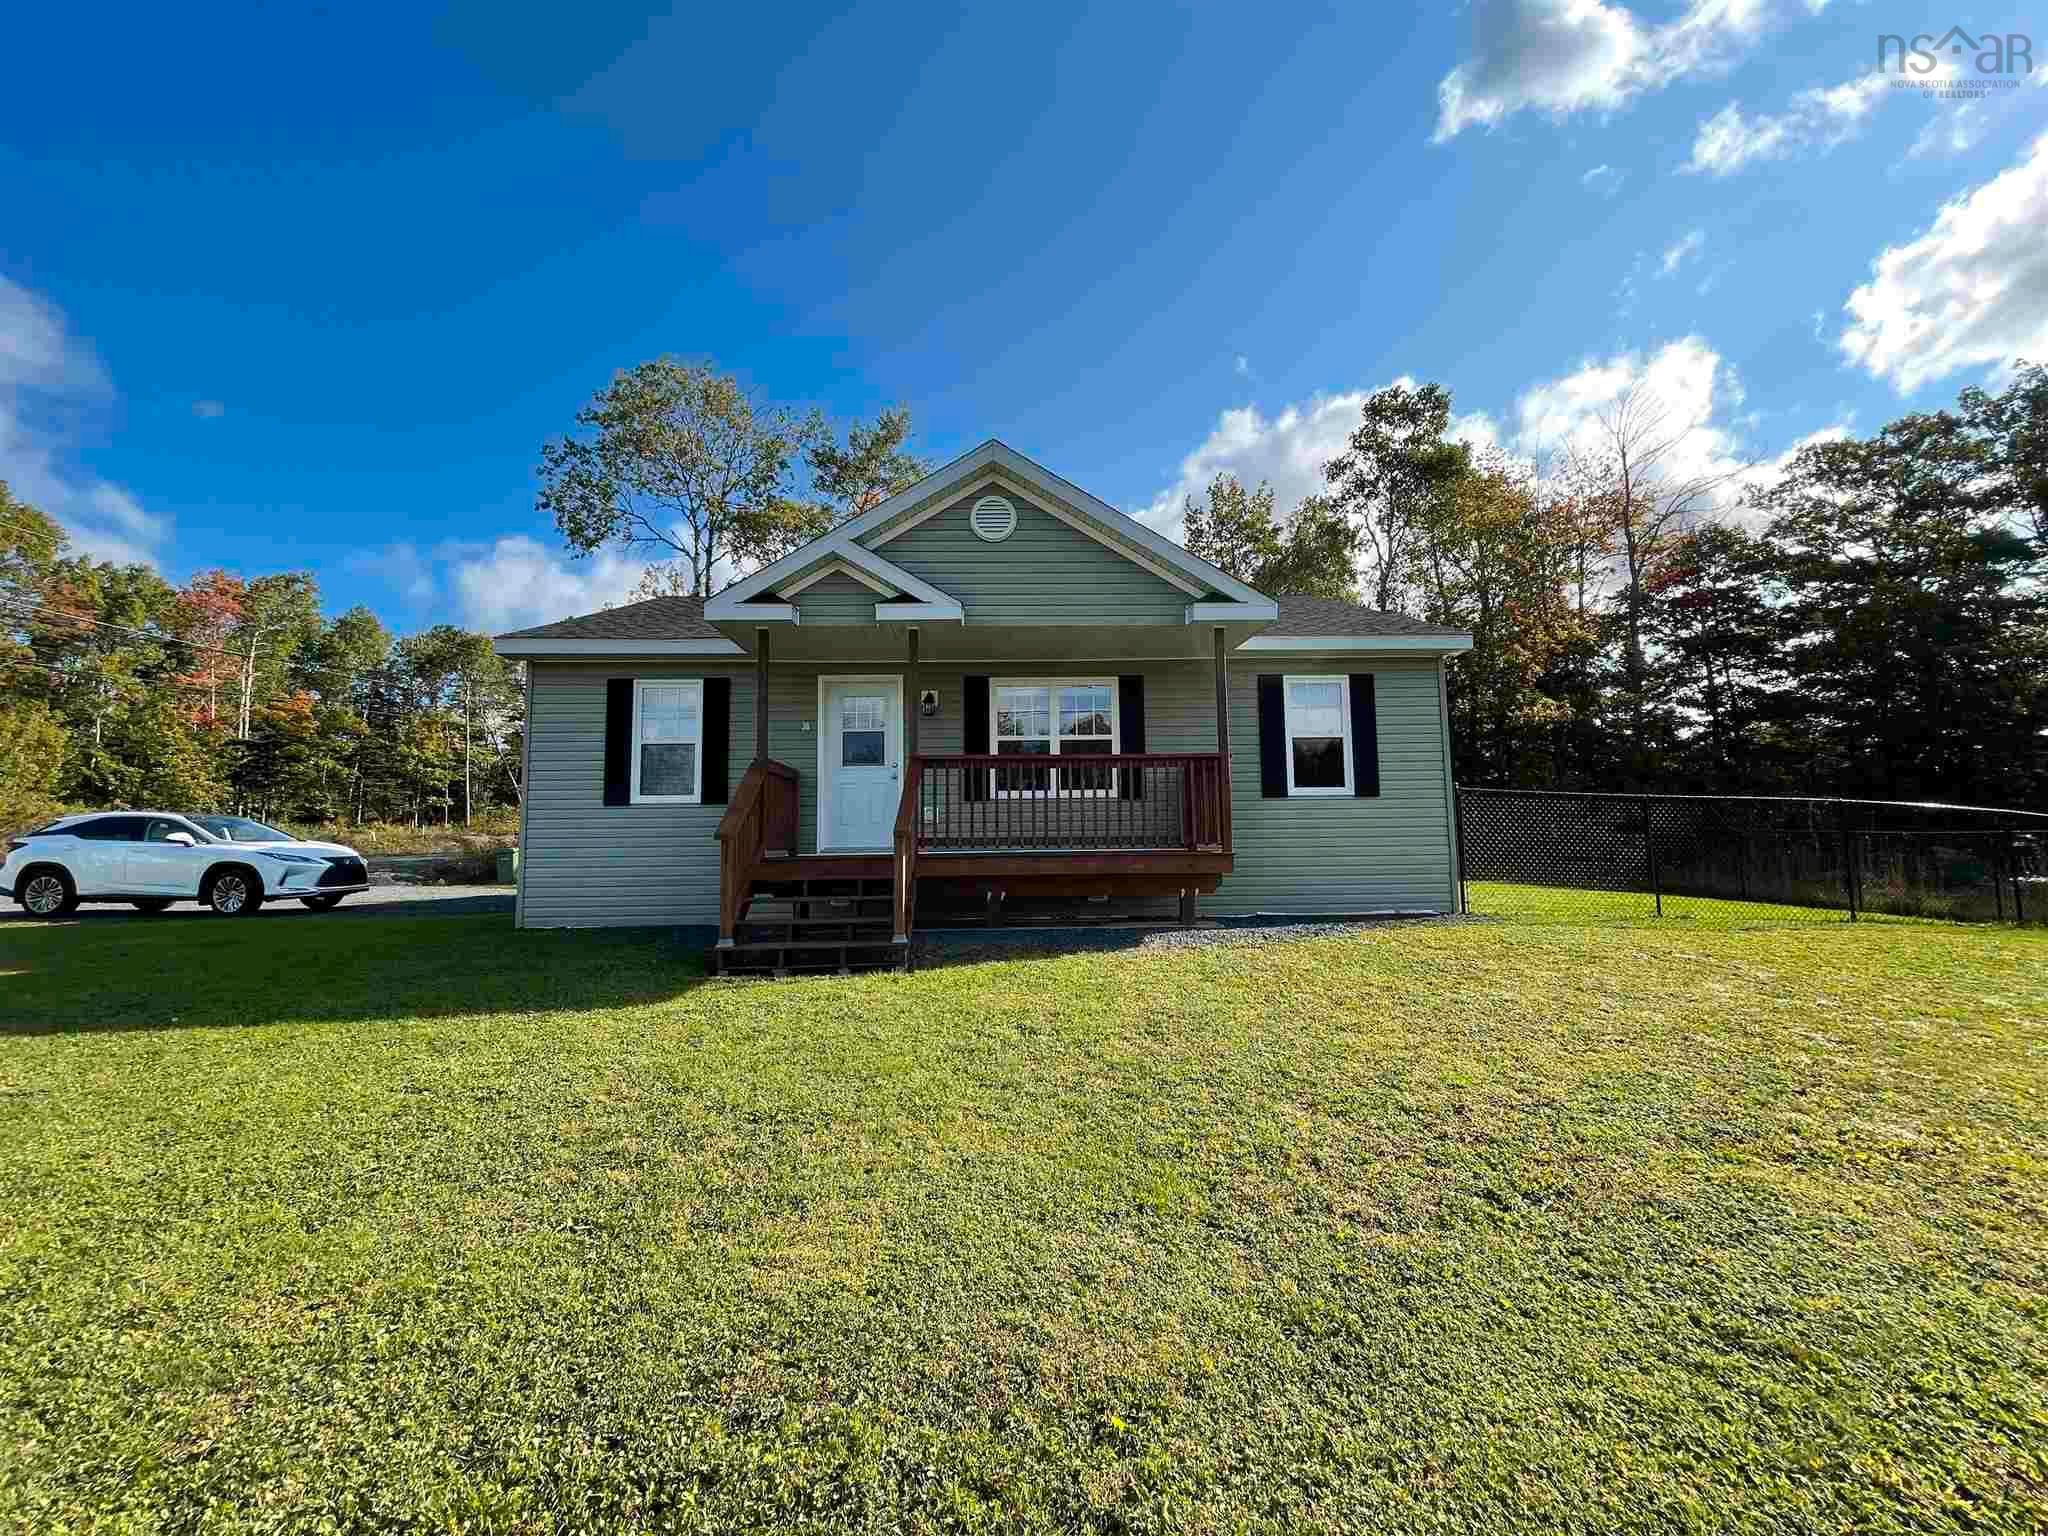 Main Photo: 38 Munroe Heights Road in Westville Road: 108-Rural Pictou County Residential for sale (Northern Region)  : MLS®# 202125567